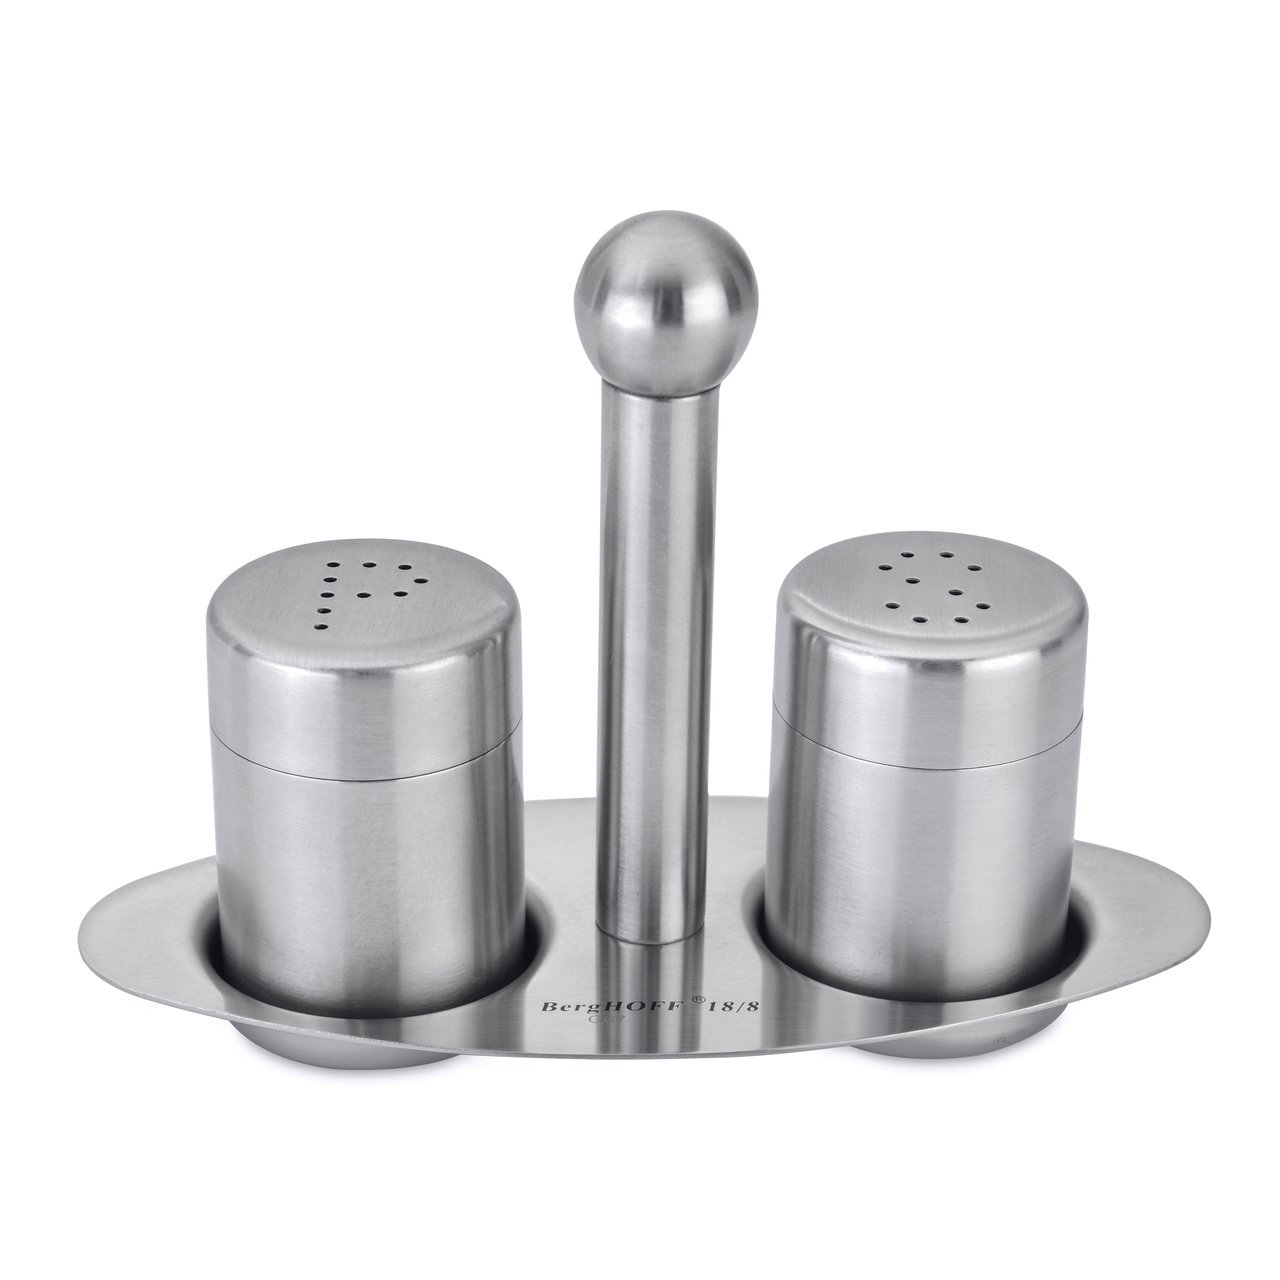 BergHOFF Classic Satin Finish Stainless Steel Cruet Set with Stand, Silver, 3-Piece 1106298A